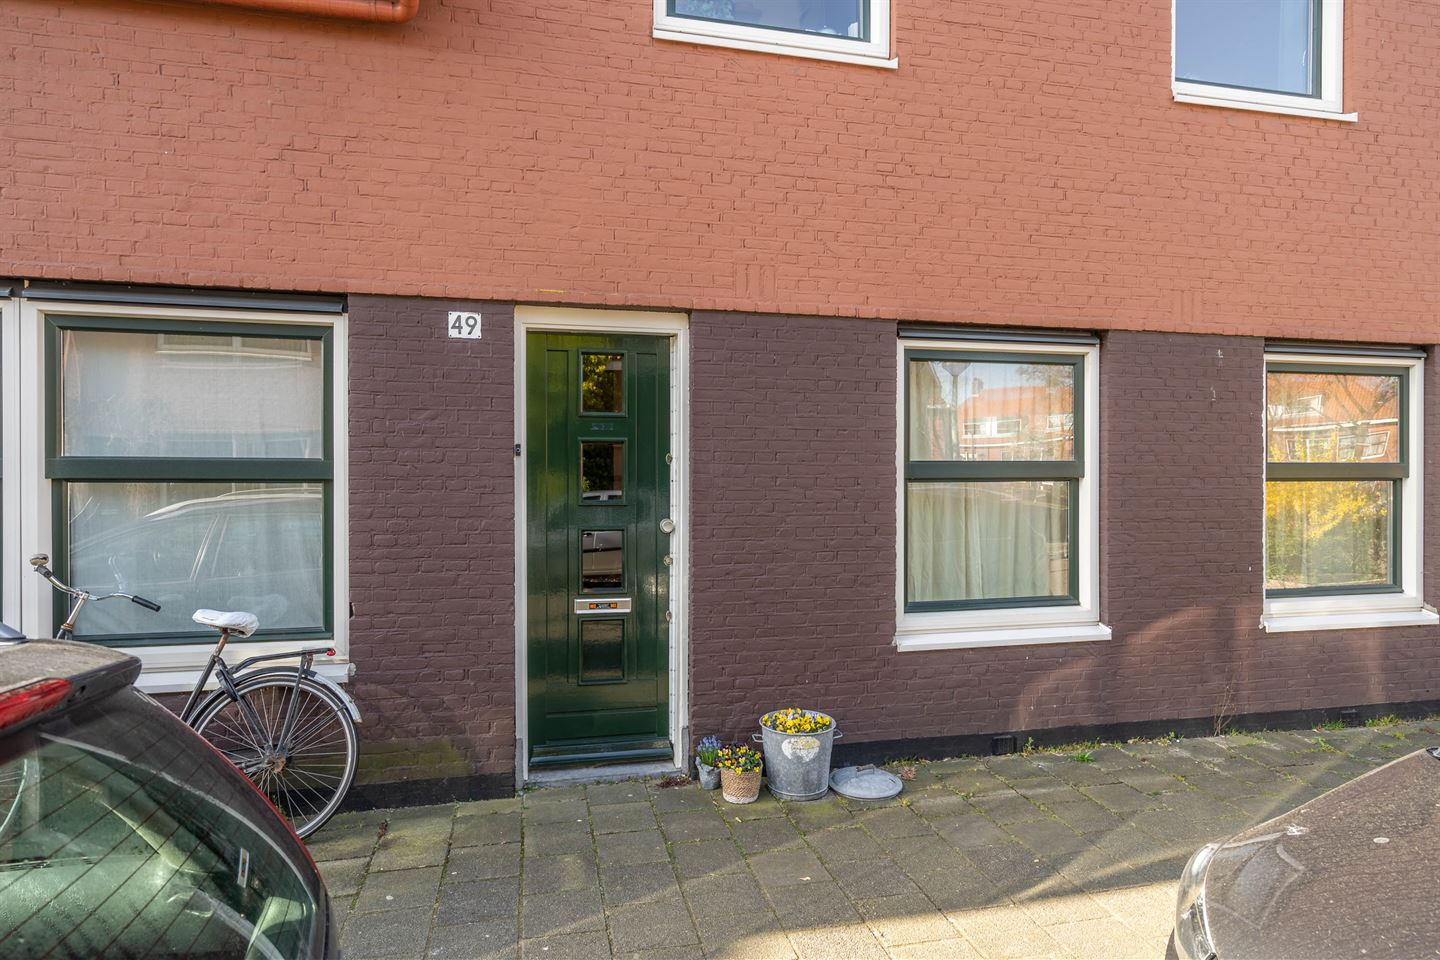 View photo 3 of Nigellestraat 49